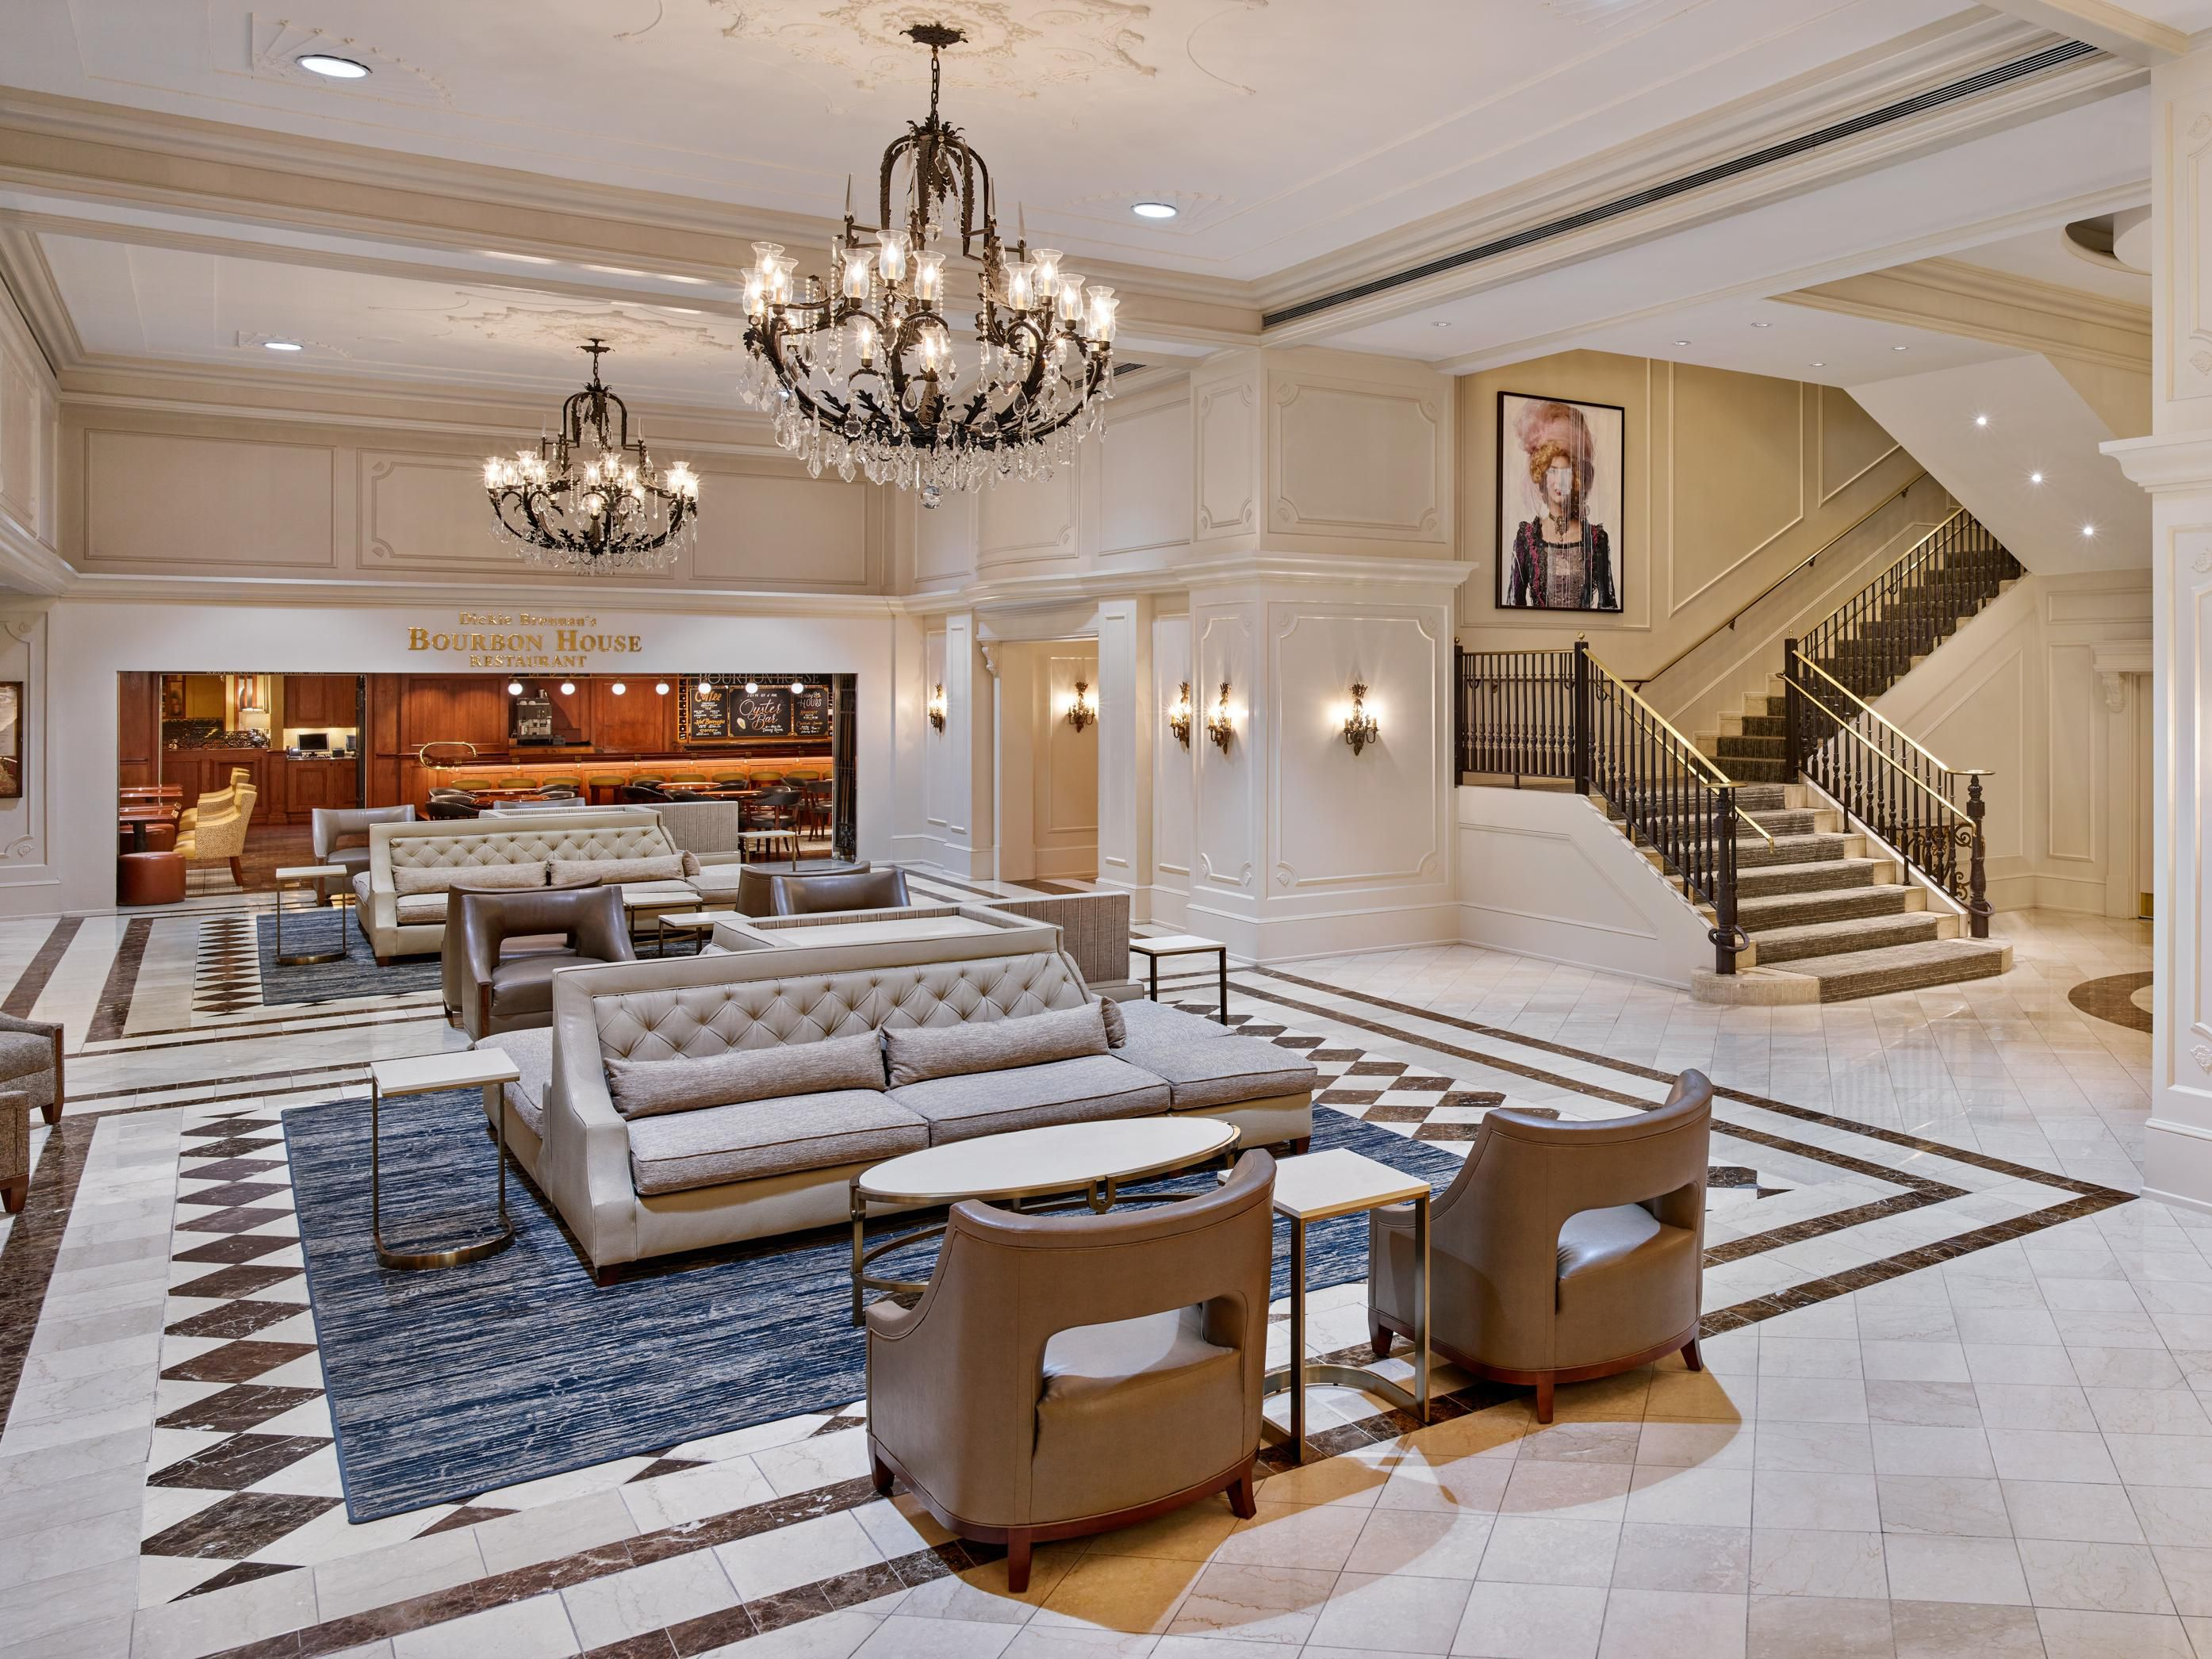 Hotels In New Orleans Near Bourbon Street | Crowne Plaza New ...